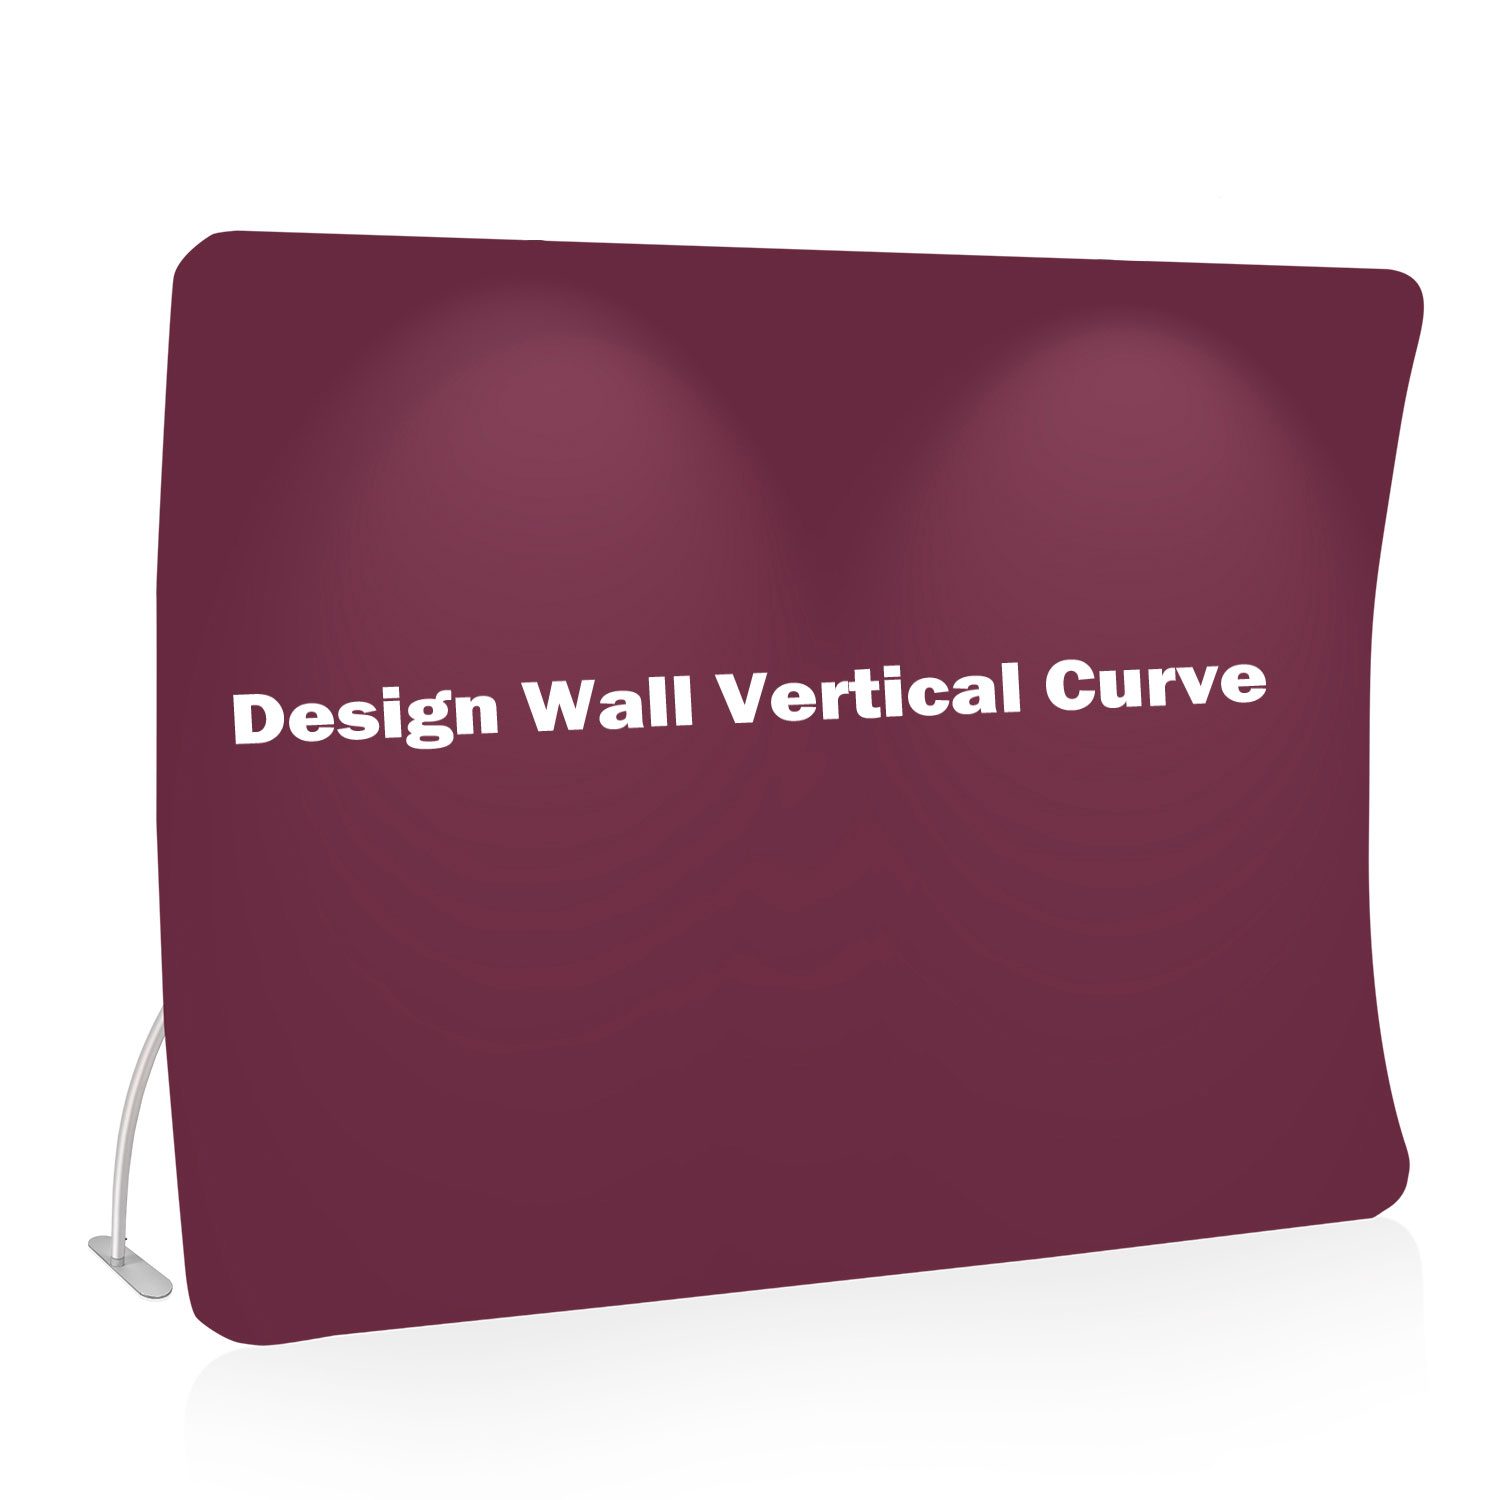 Design Wall Vertical Curve